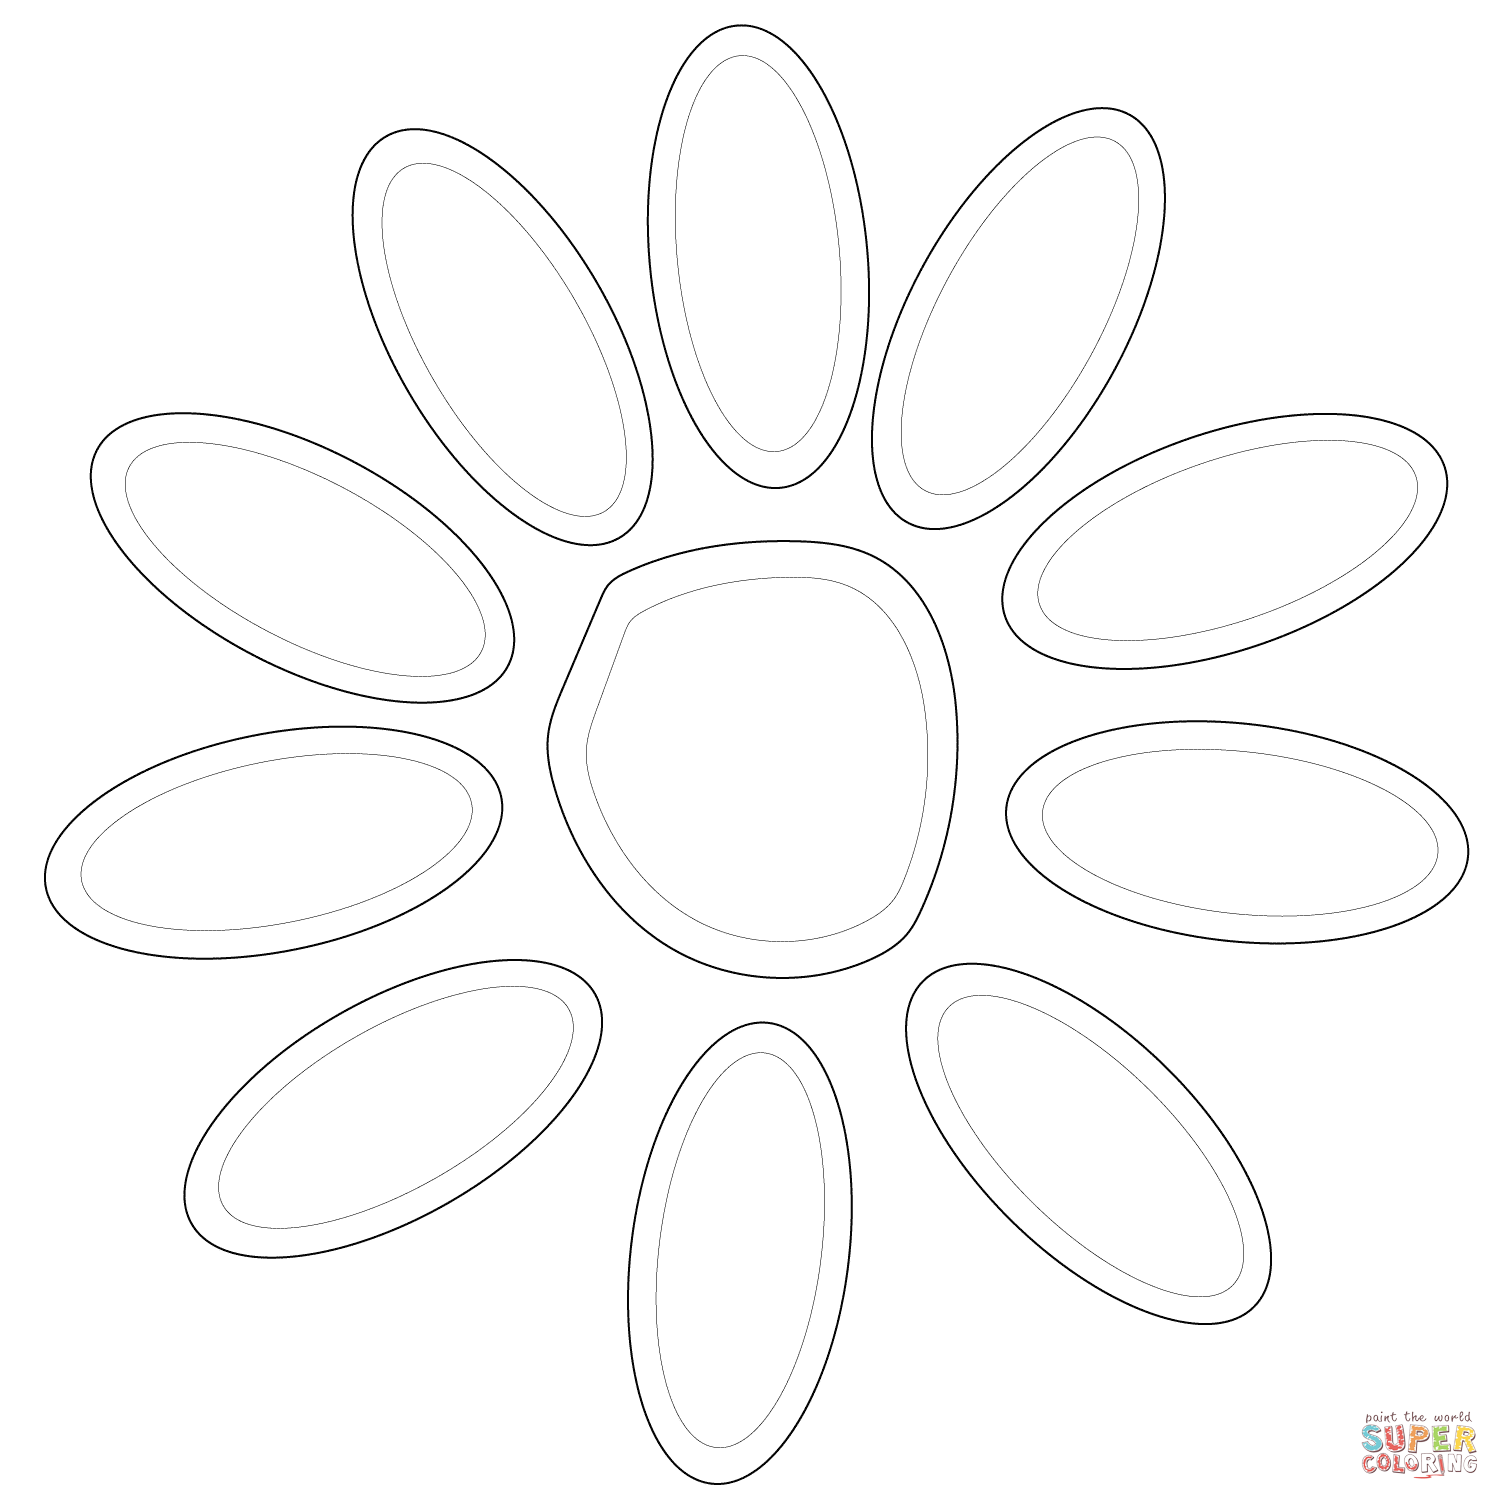 Petal coloring, Download Petal coloring for free 2019